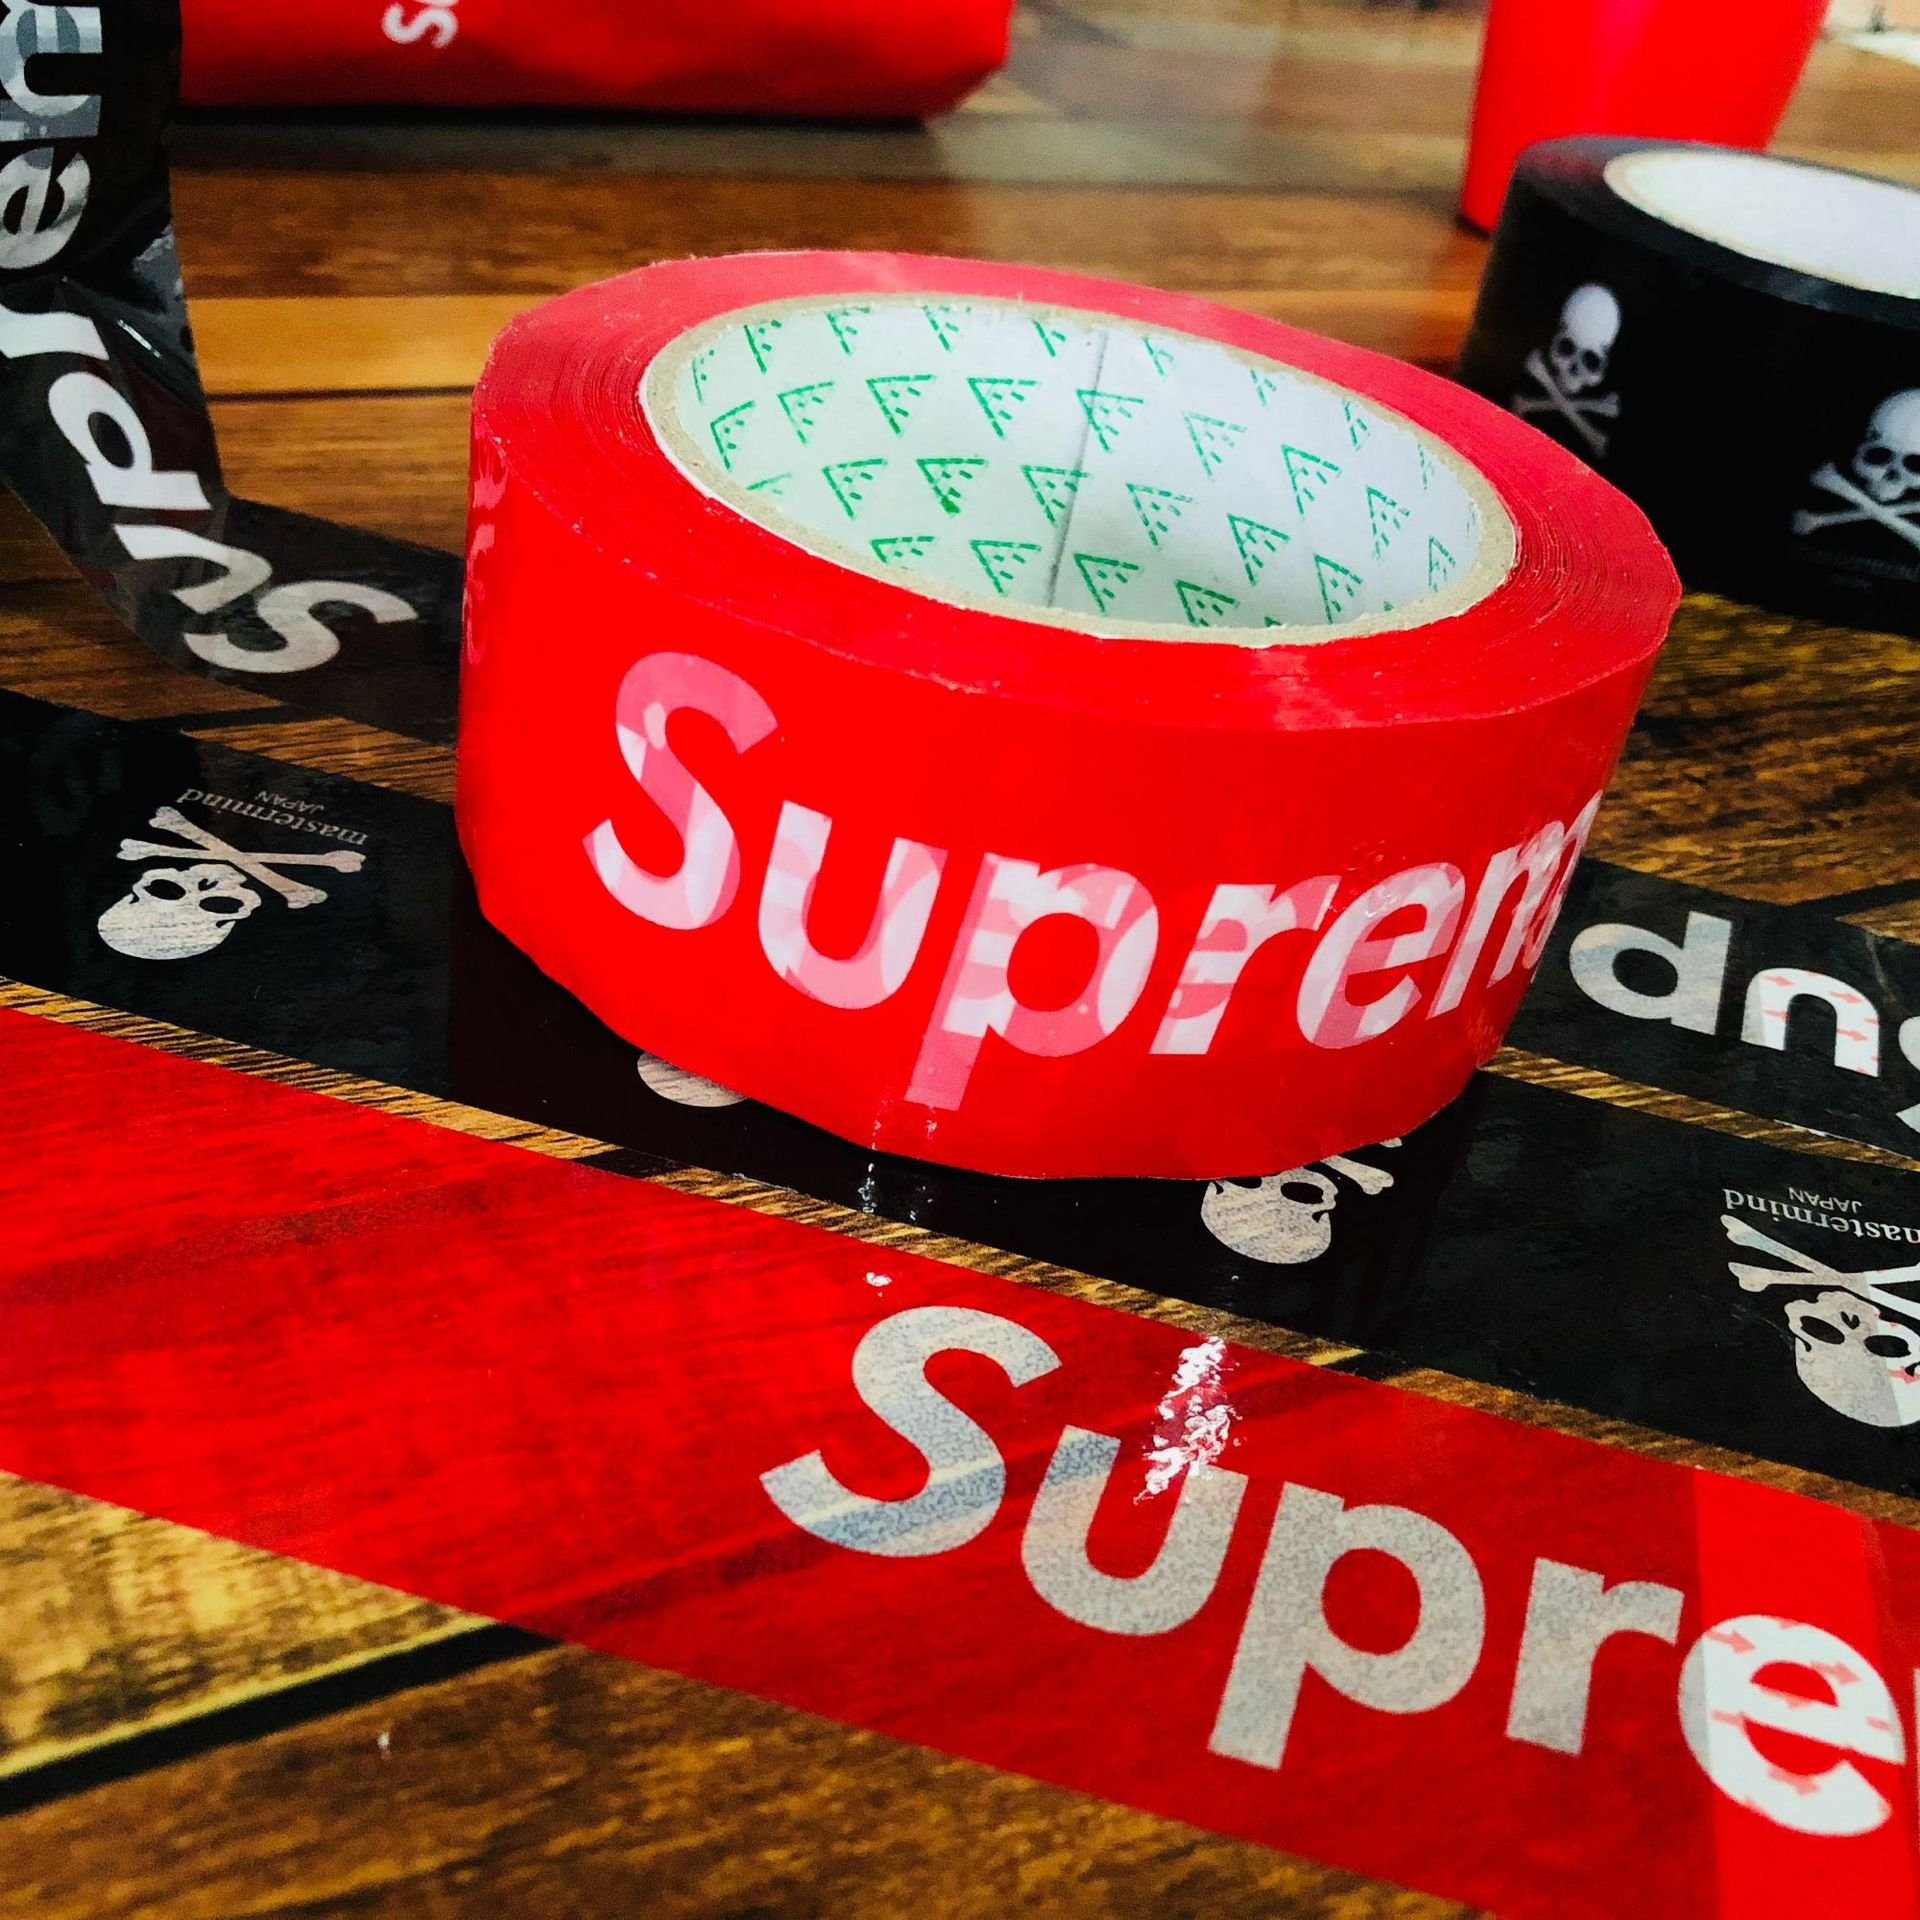 Supreme Heavy Duty Shipping Packaging Tape Adhesive SUP Red Roll Sealing Logo Office Storage Commercial Moving Box Grade Super Thick Roll Carton Industrial Transport (1)